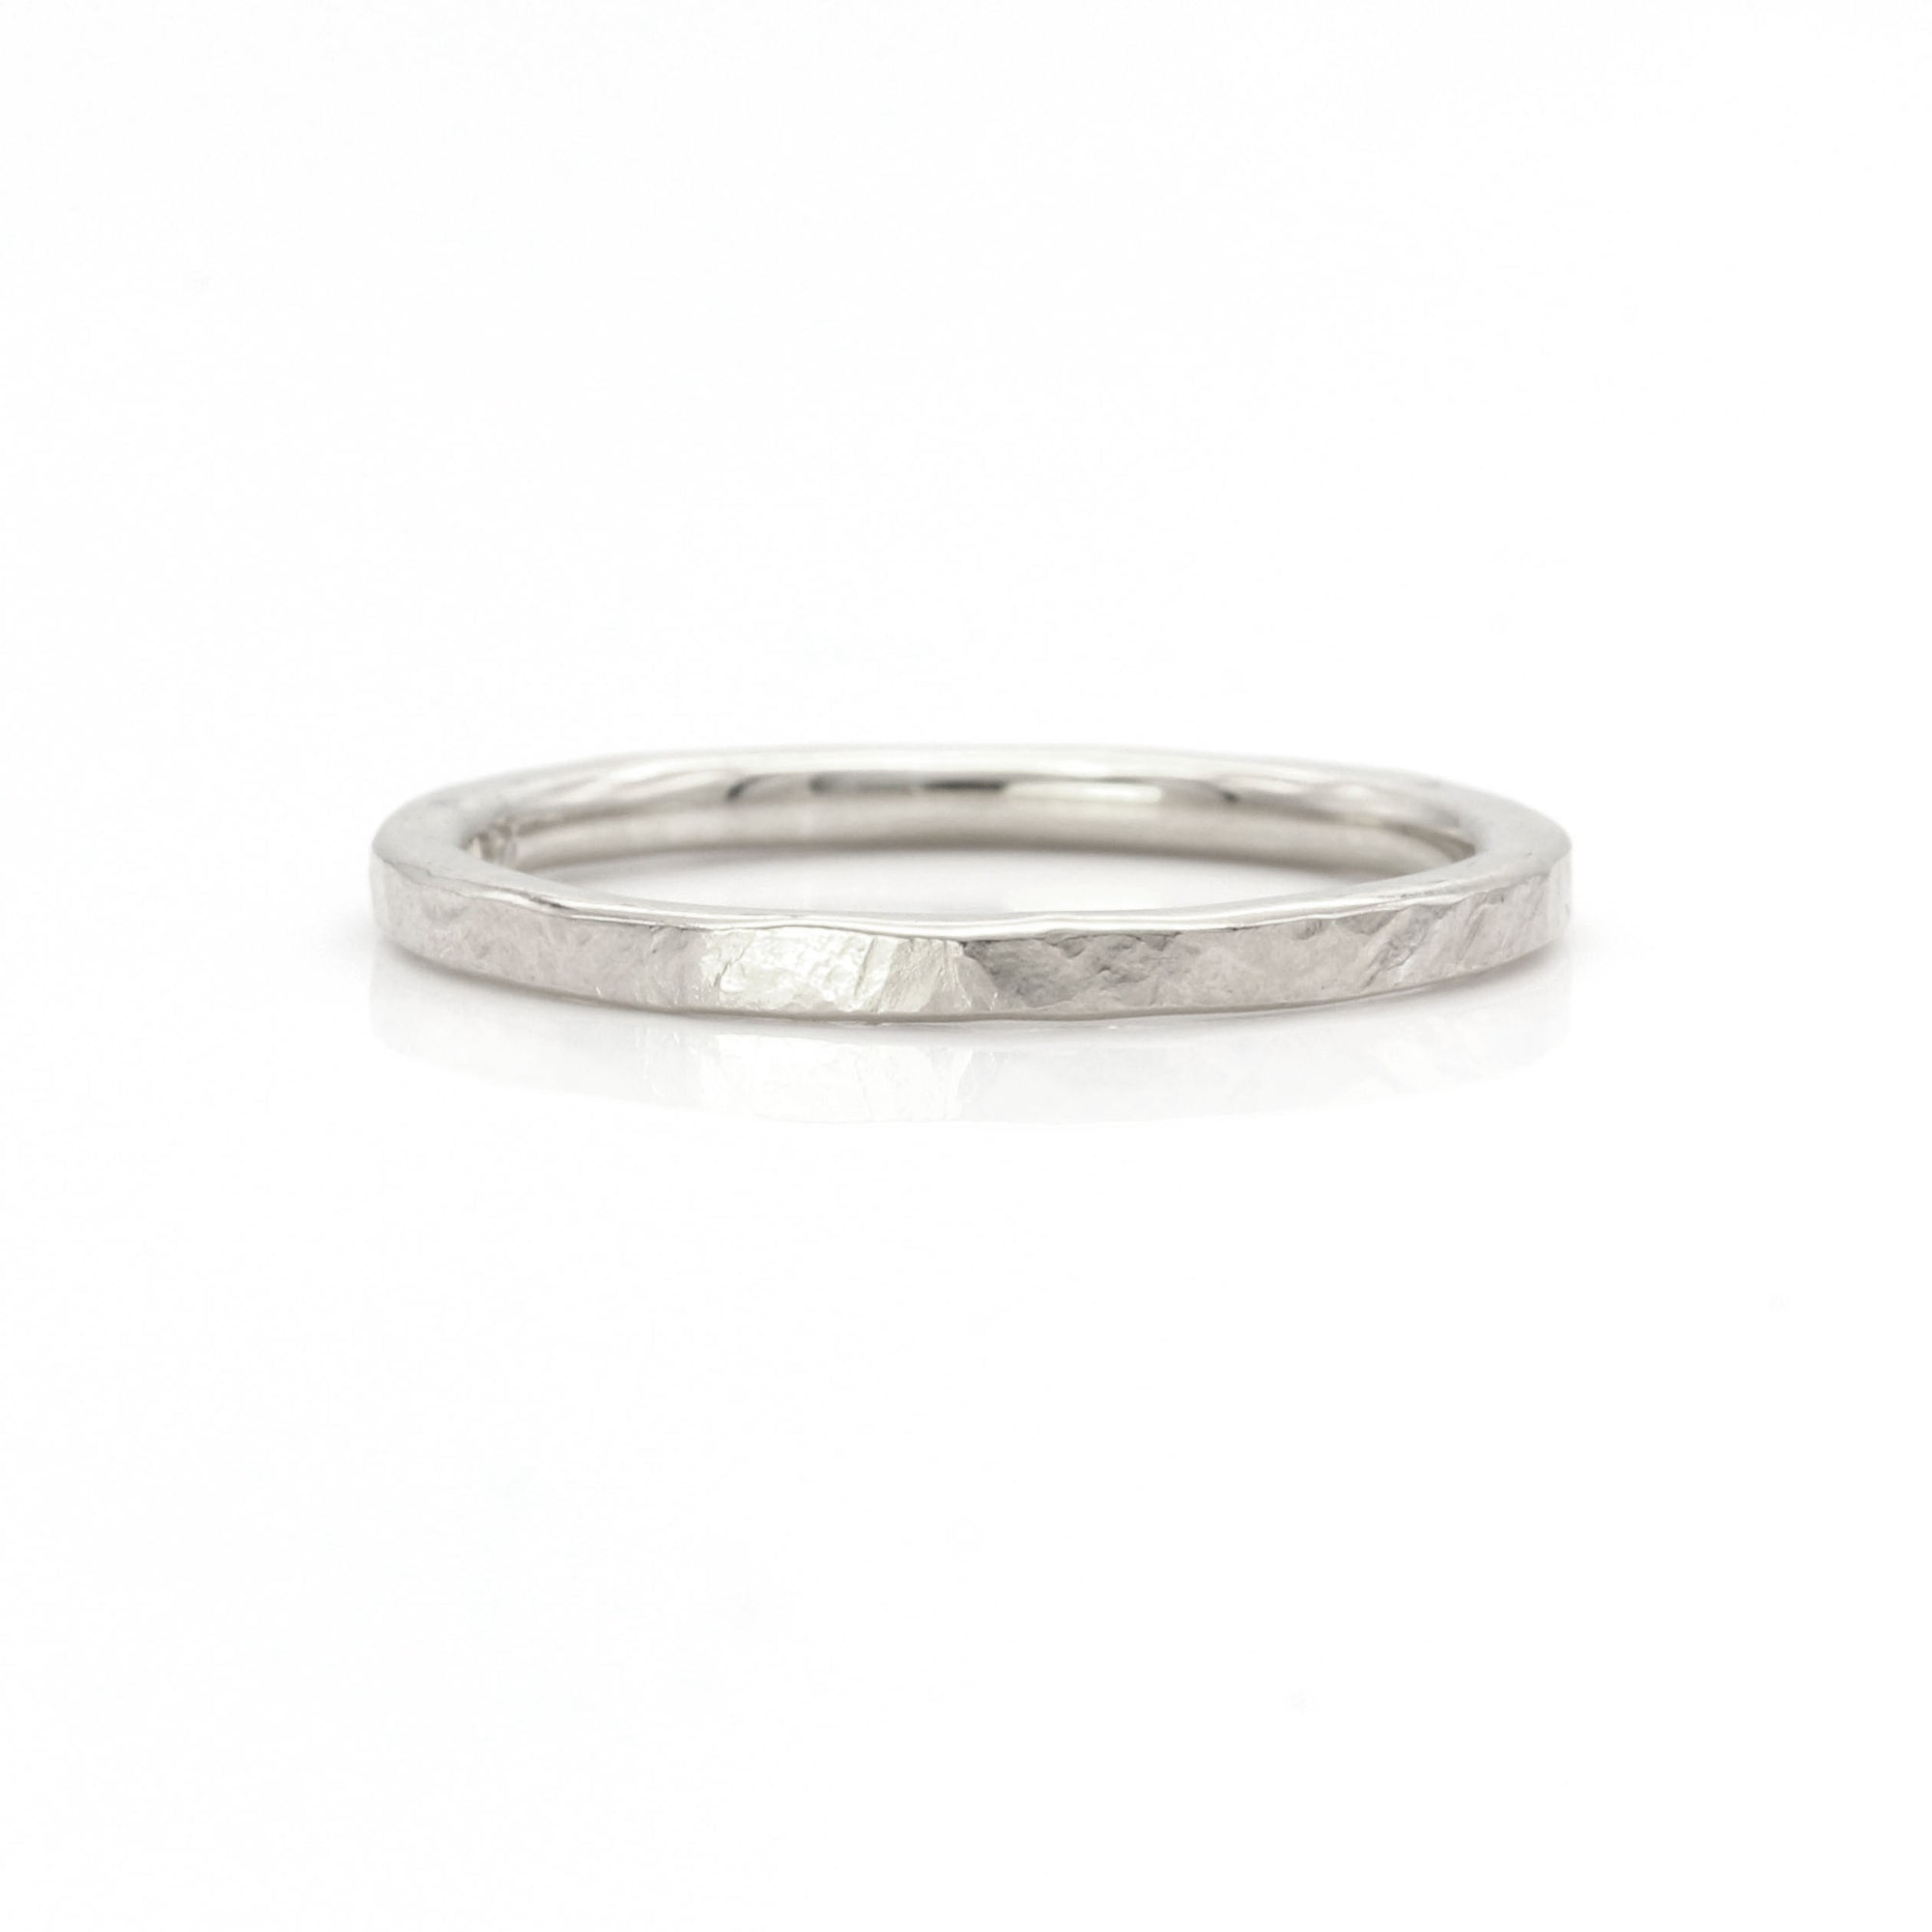 Organic Silk Textured Band | 2mm Wide | Palladium White Gold, Platinum